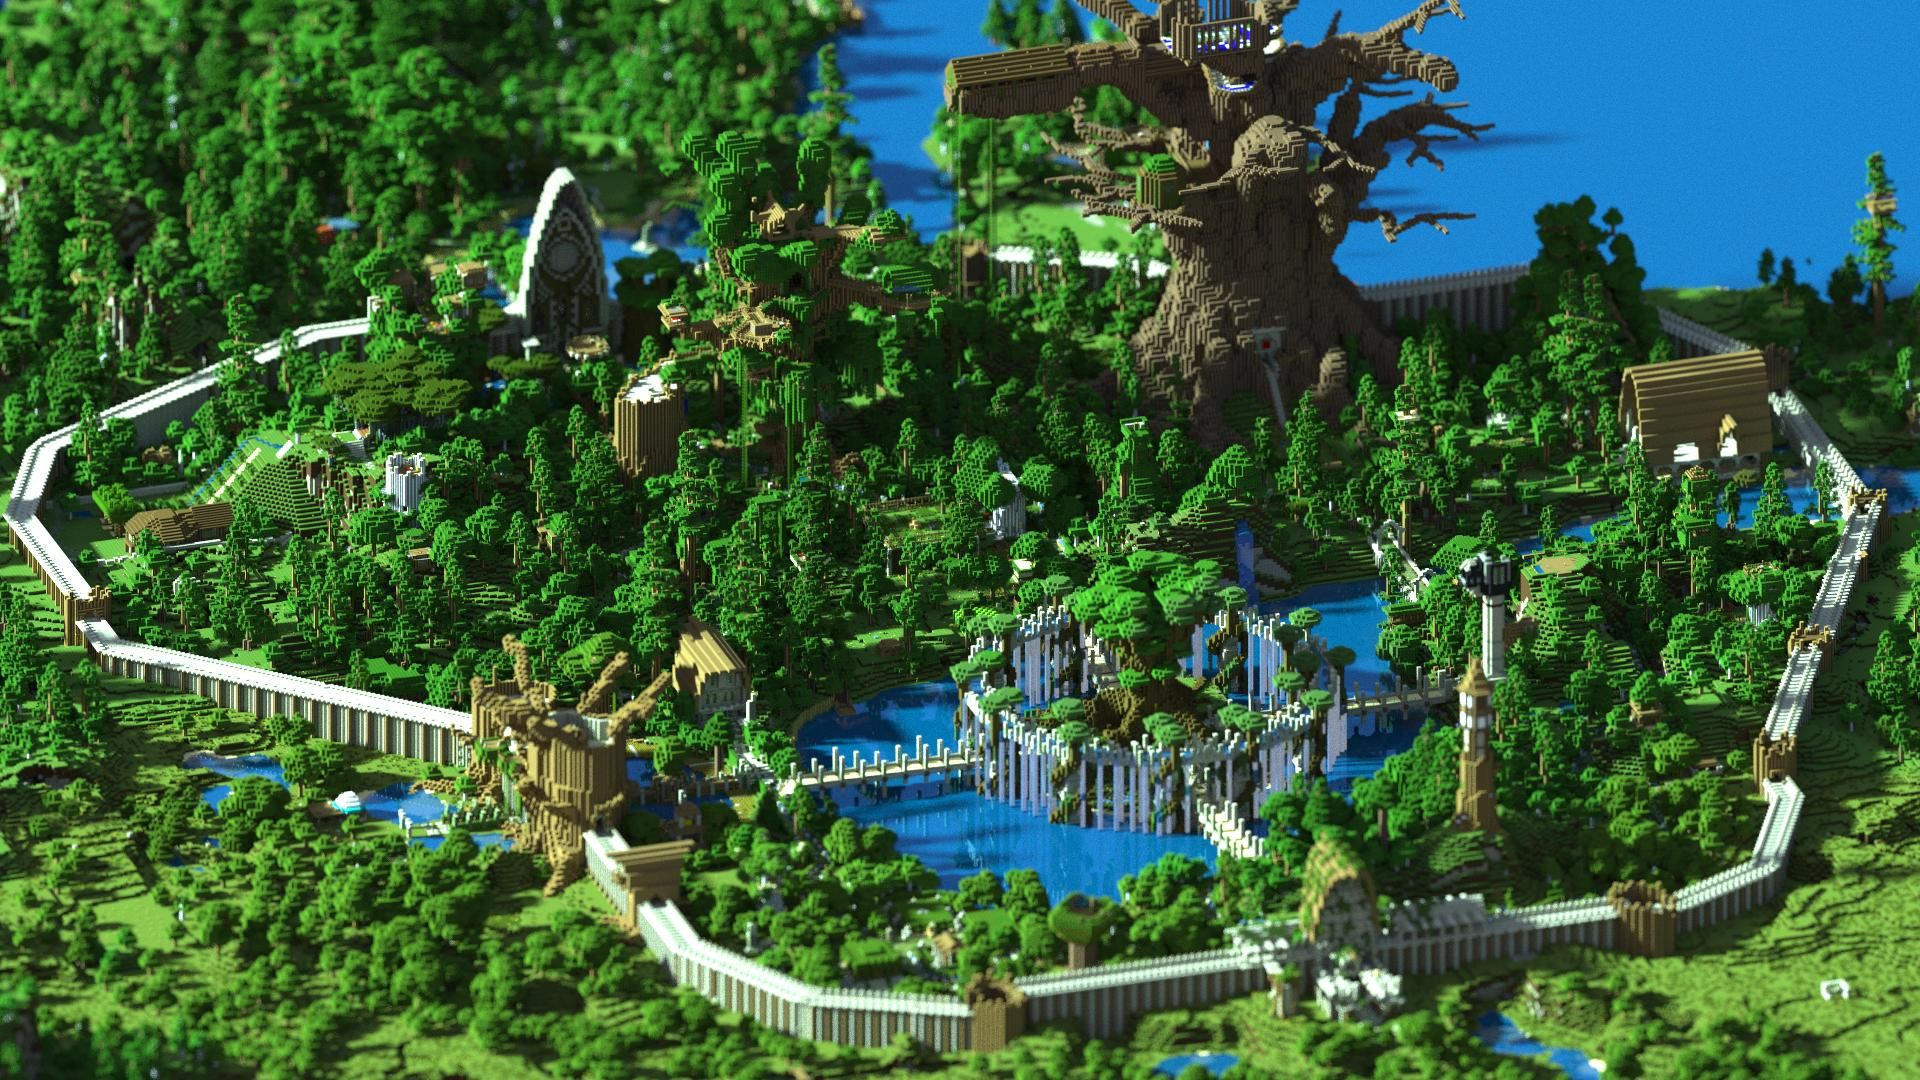 Great Wallpaper Minecraft Forest - e543a778d88f1209927e760bd252e494  Pictures_74882.jpg